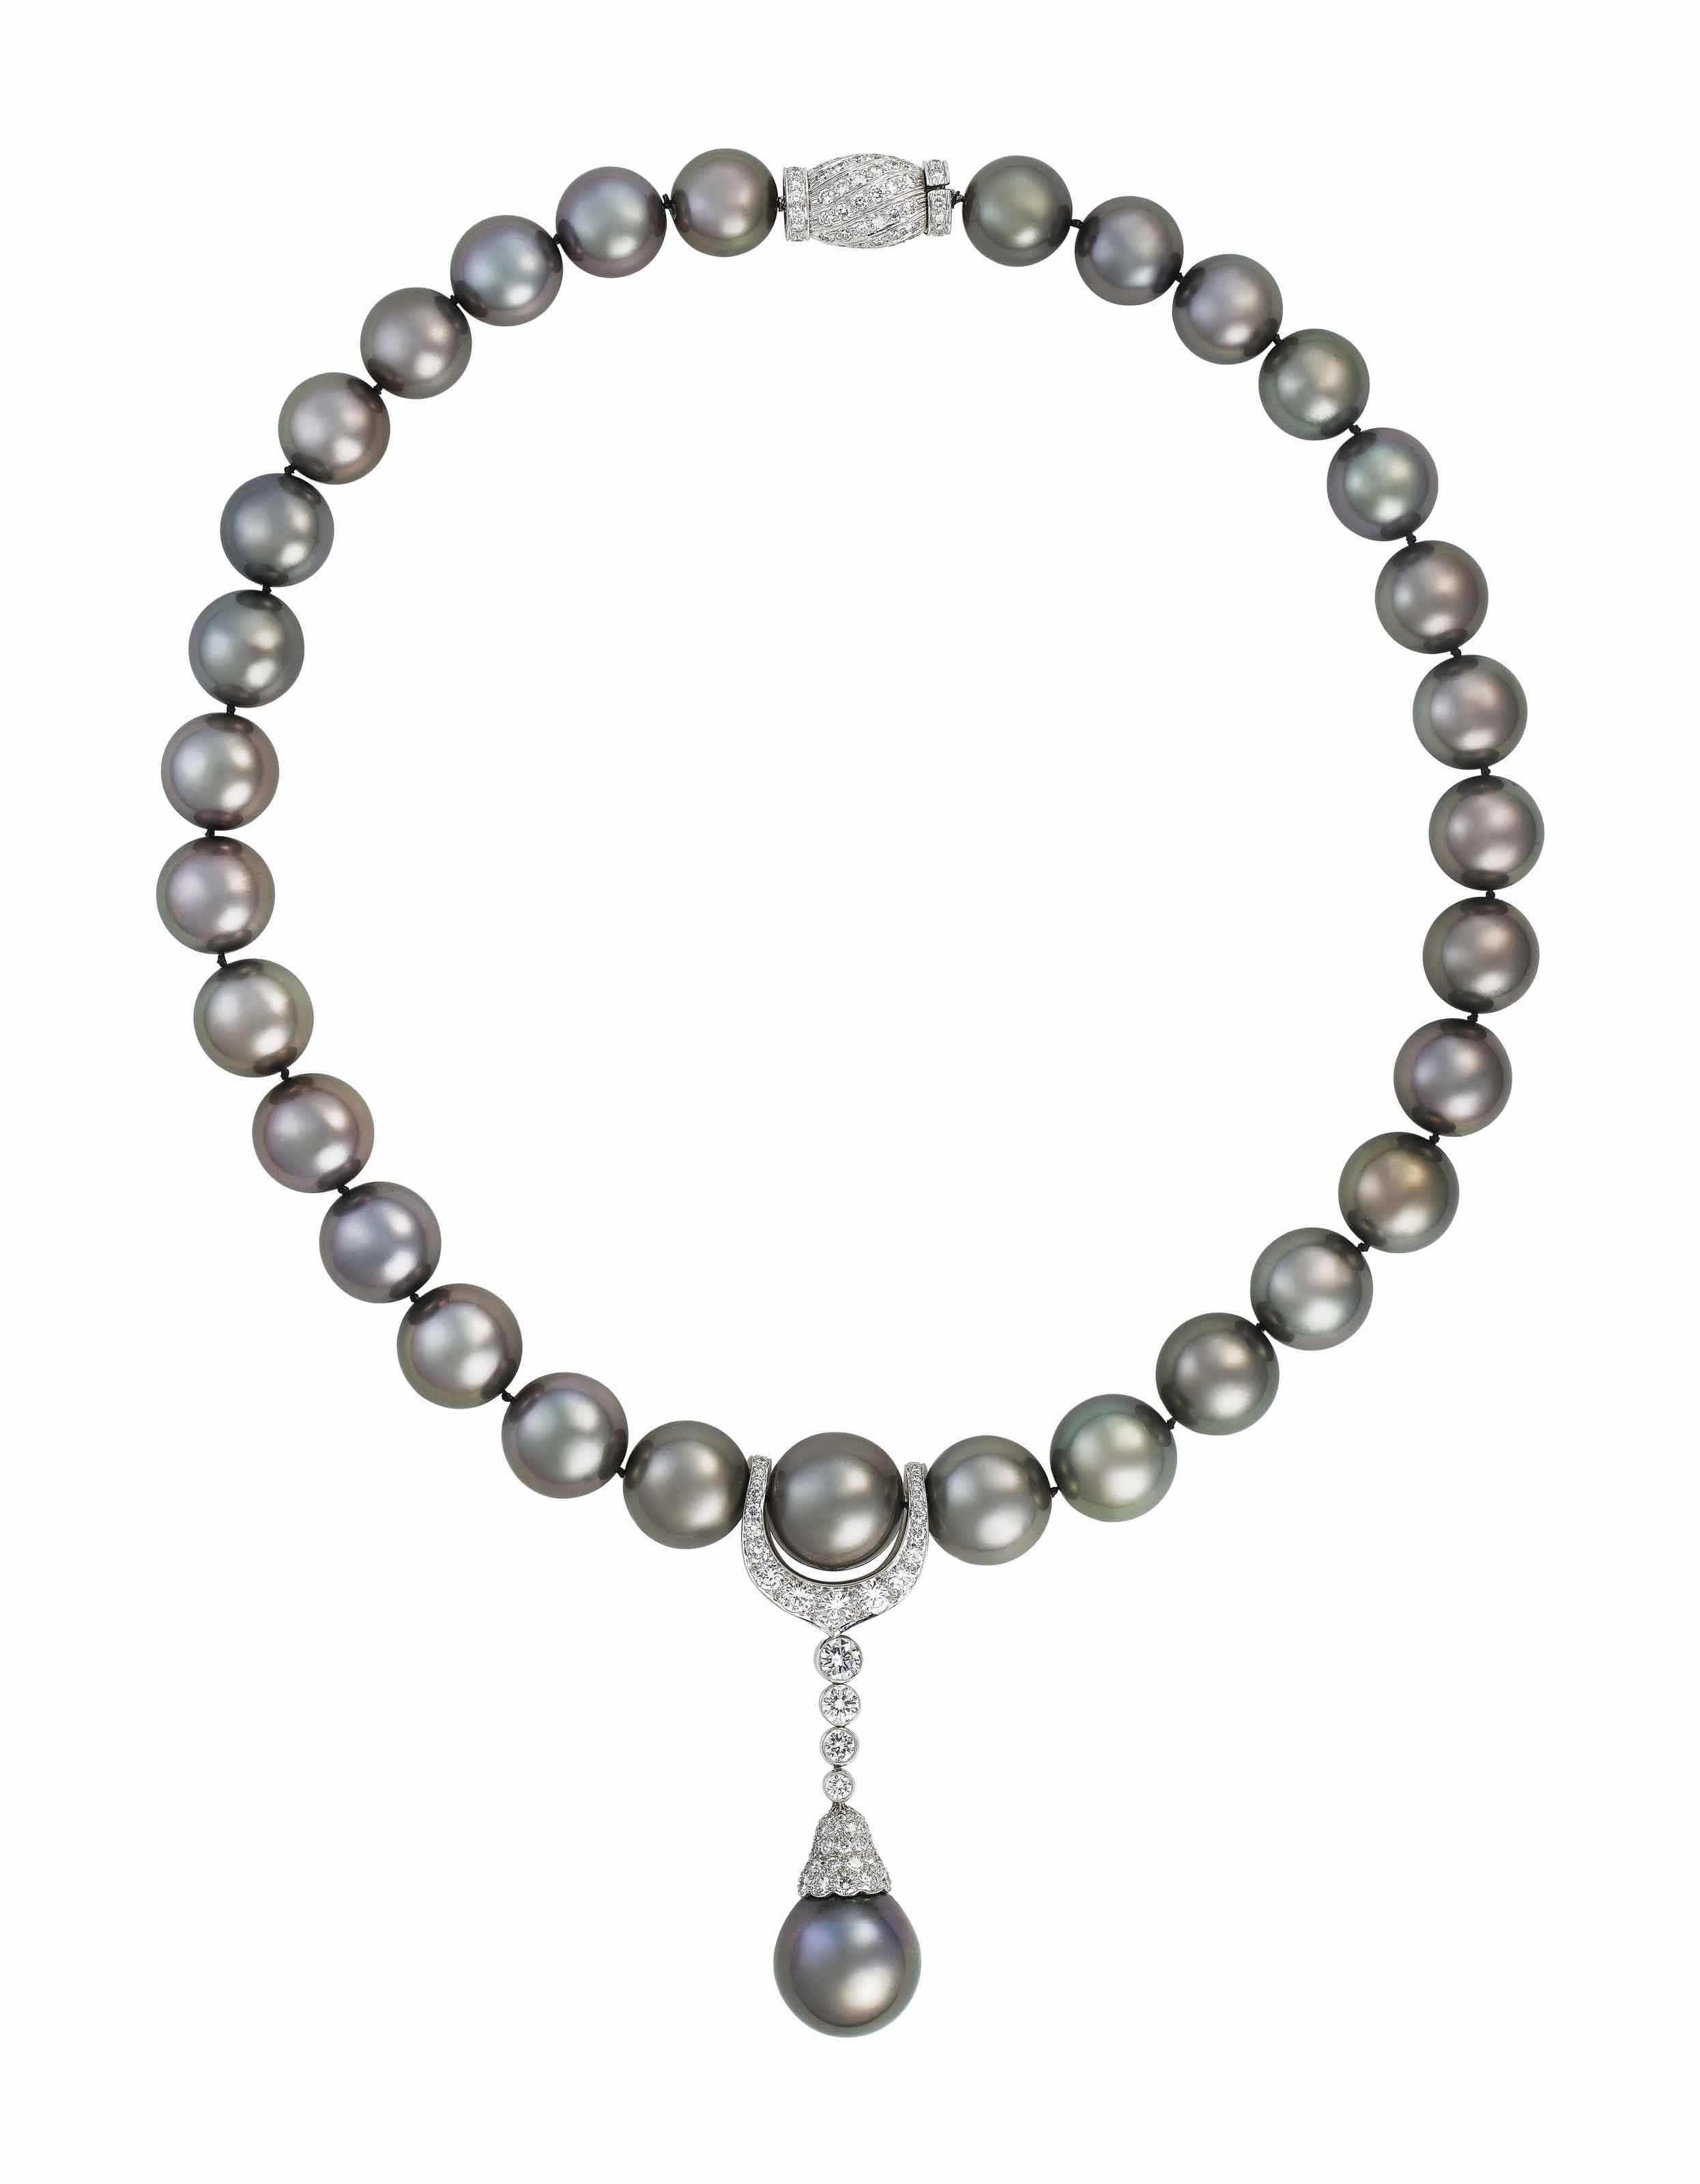 ed86e06f78bf COLOURED CULTURED PEARL AND DIAMOND NECKLACE, CARTIER   Jewelry ...